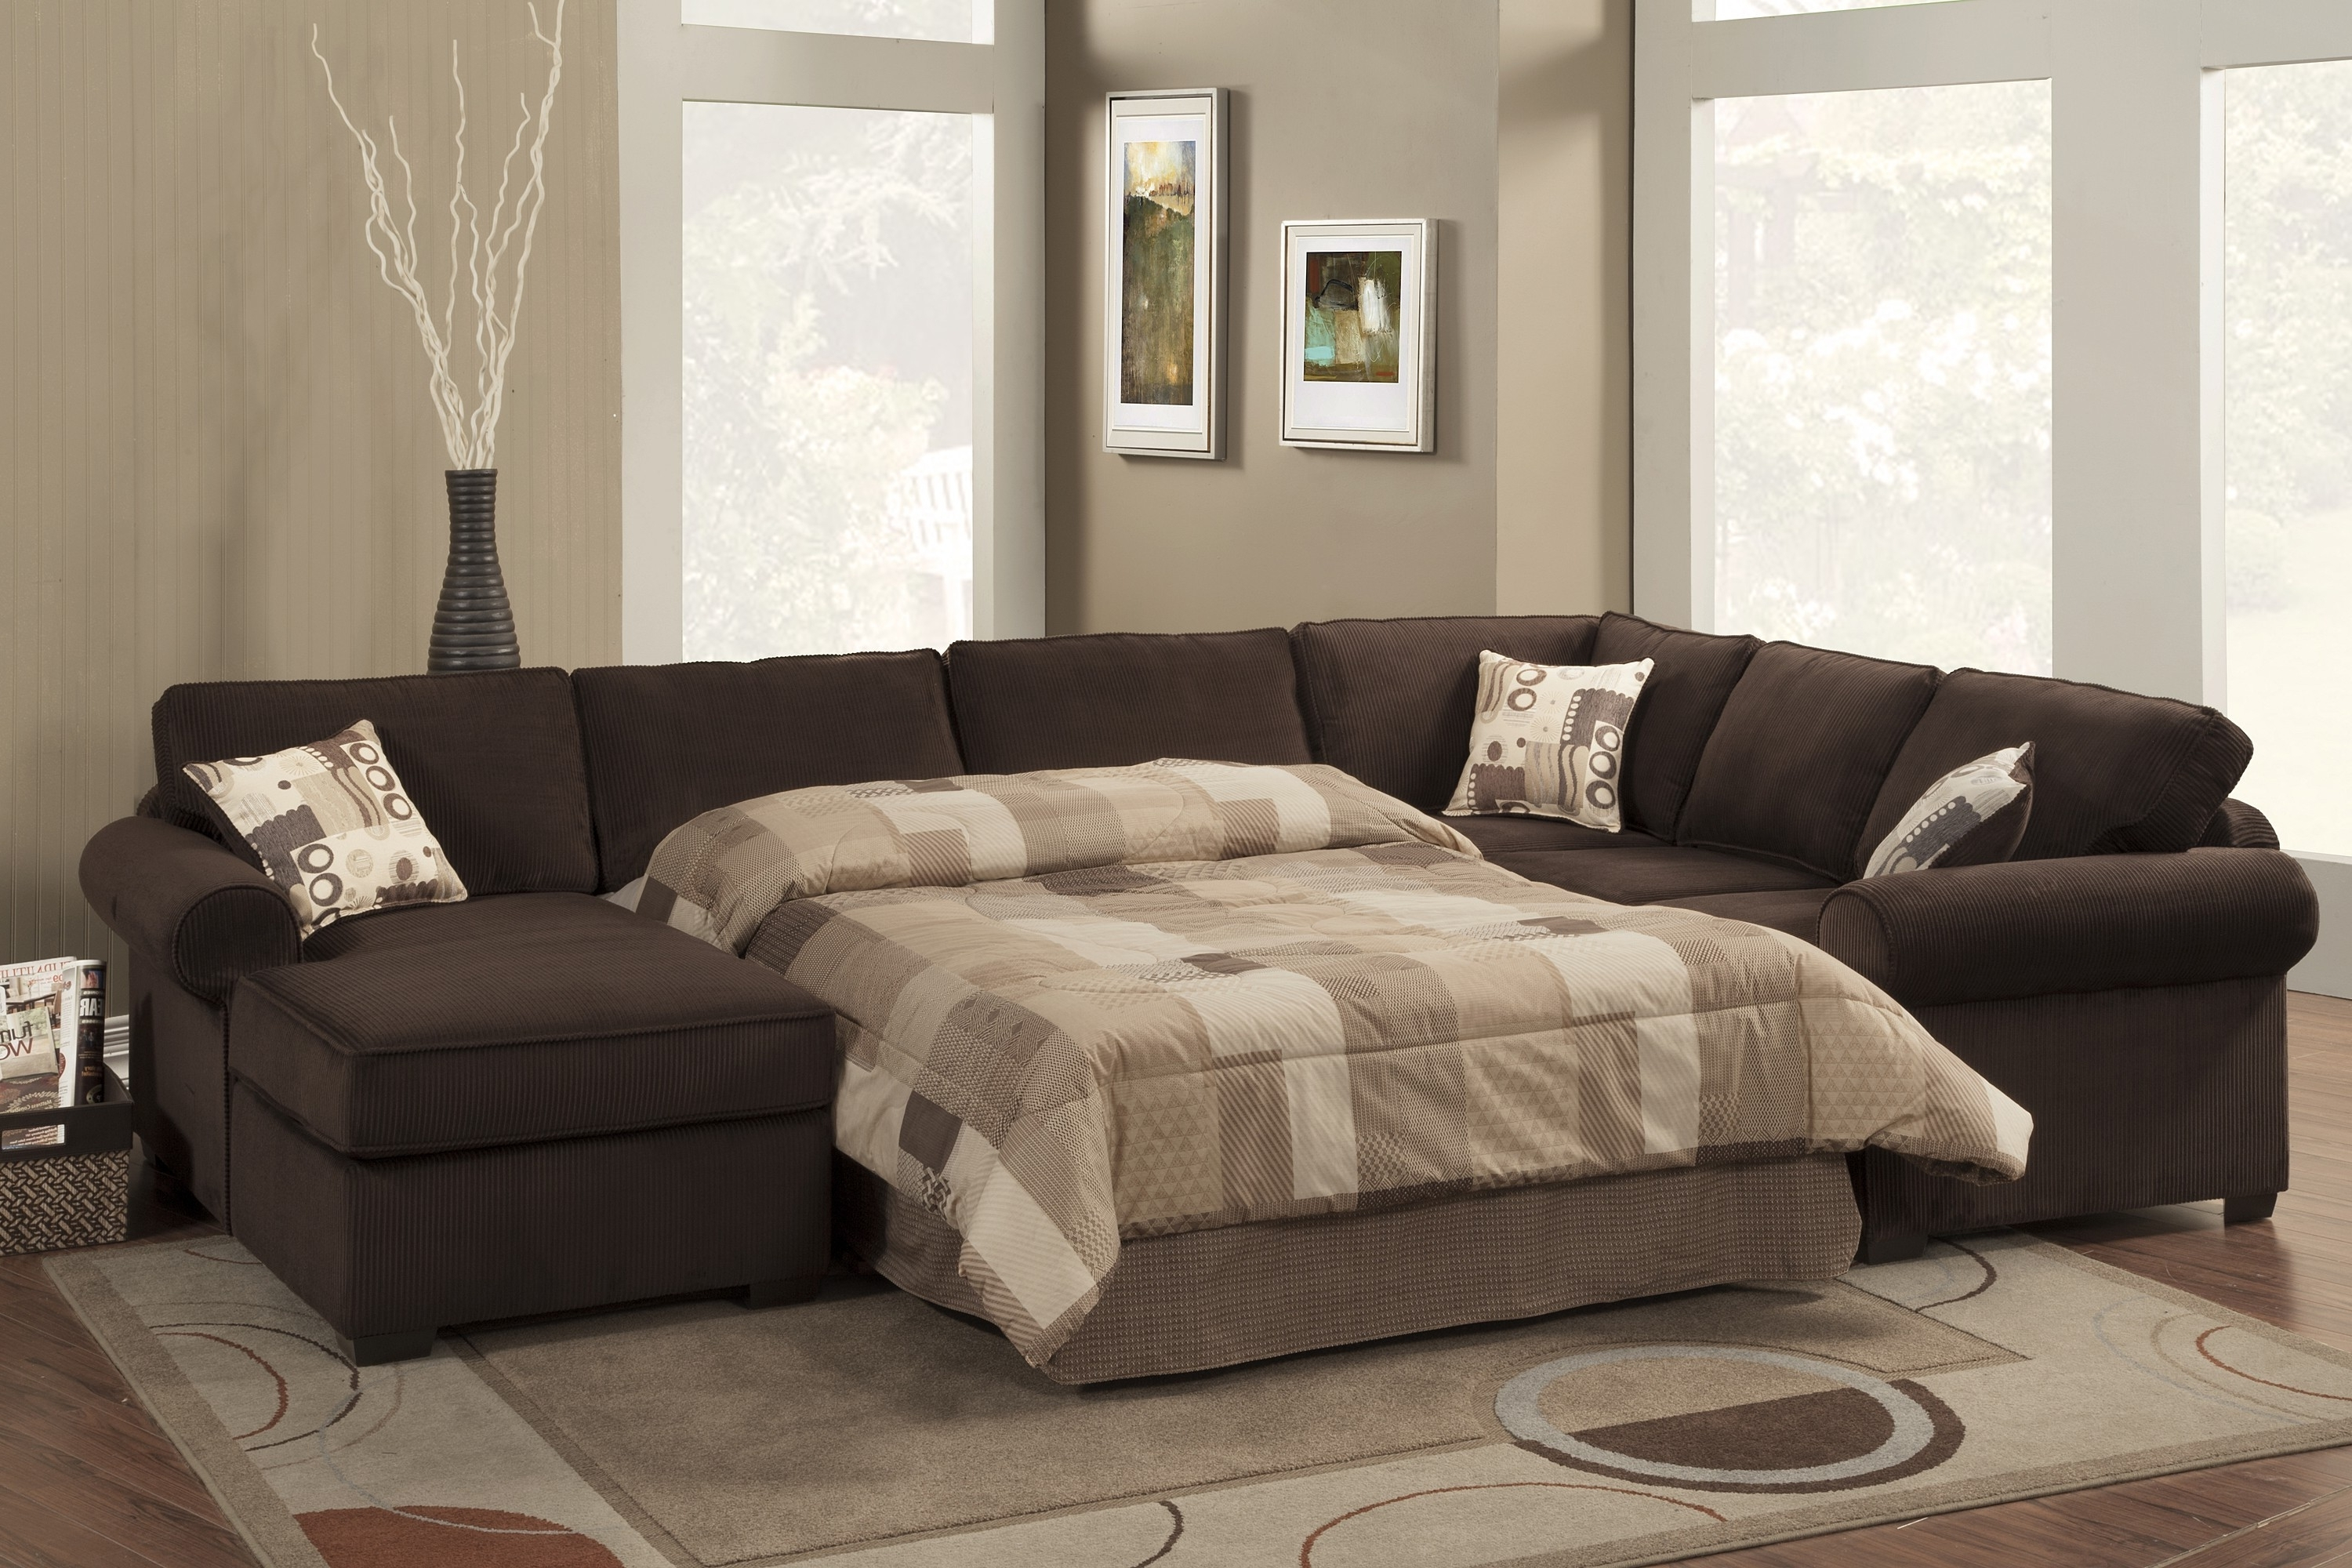 Most Popular Furniture: American Freight Sectionals For Luxury Living Room Inside Huntsville Al Sectional Sofas (View 15 of 15)